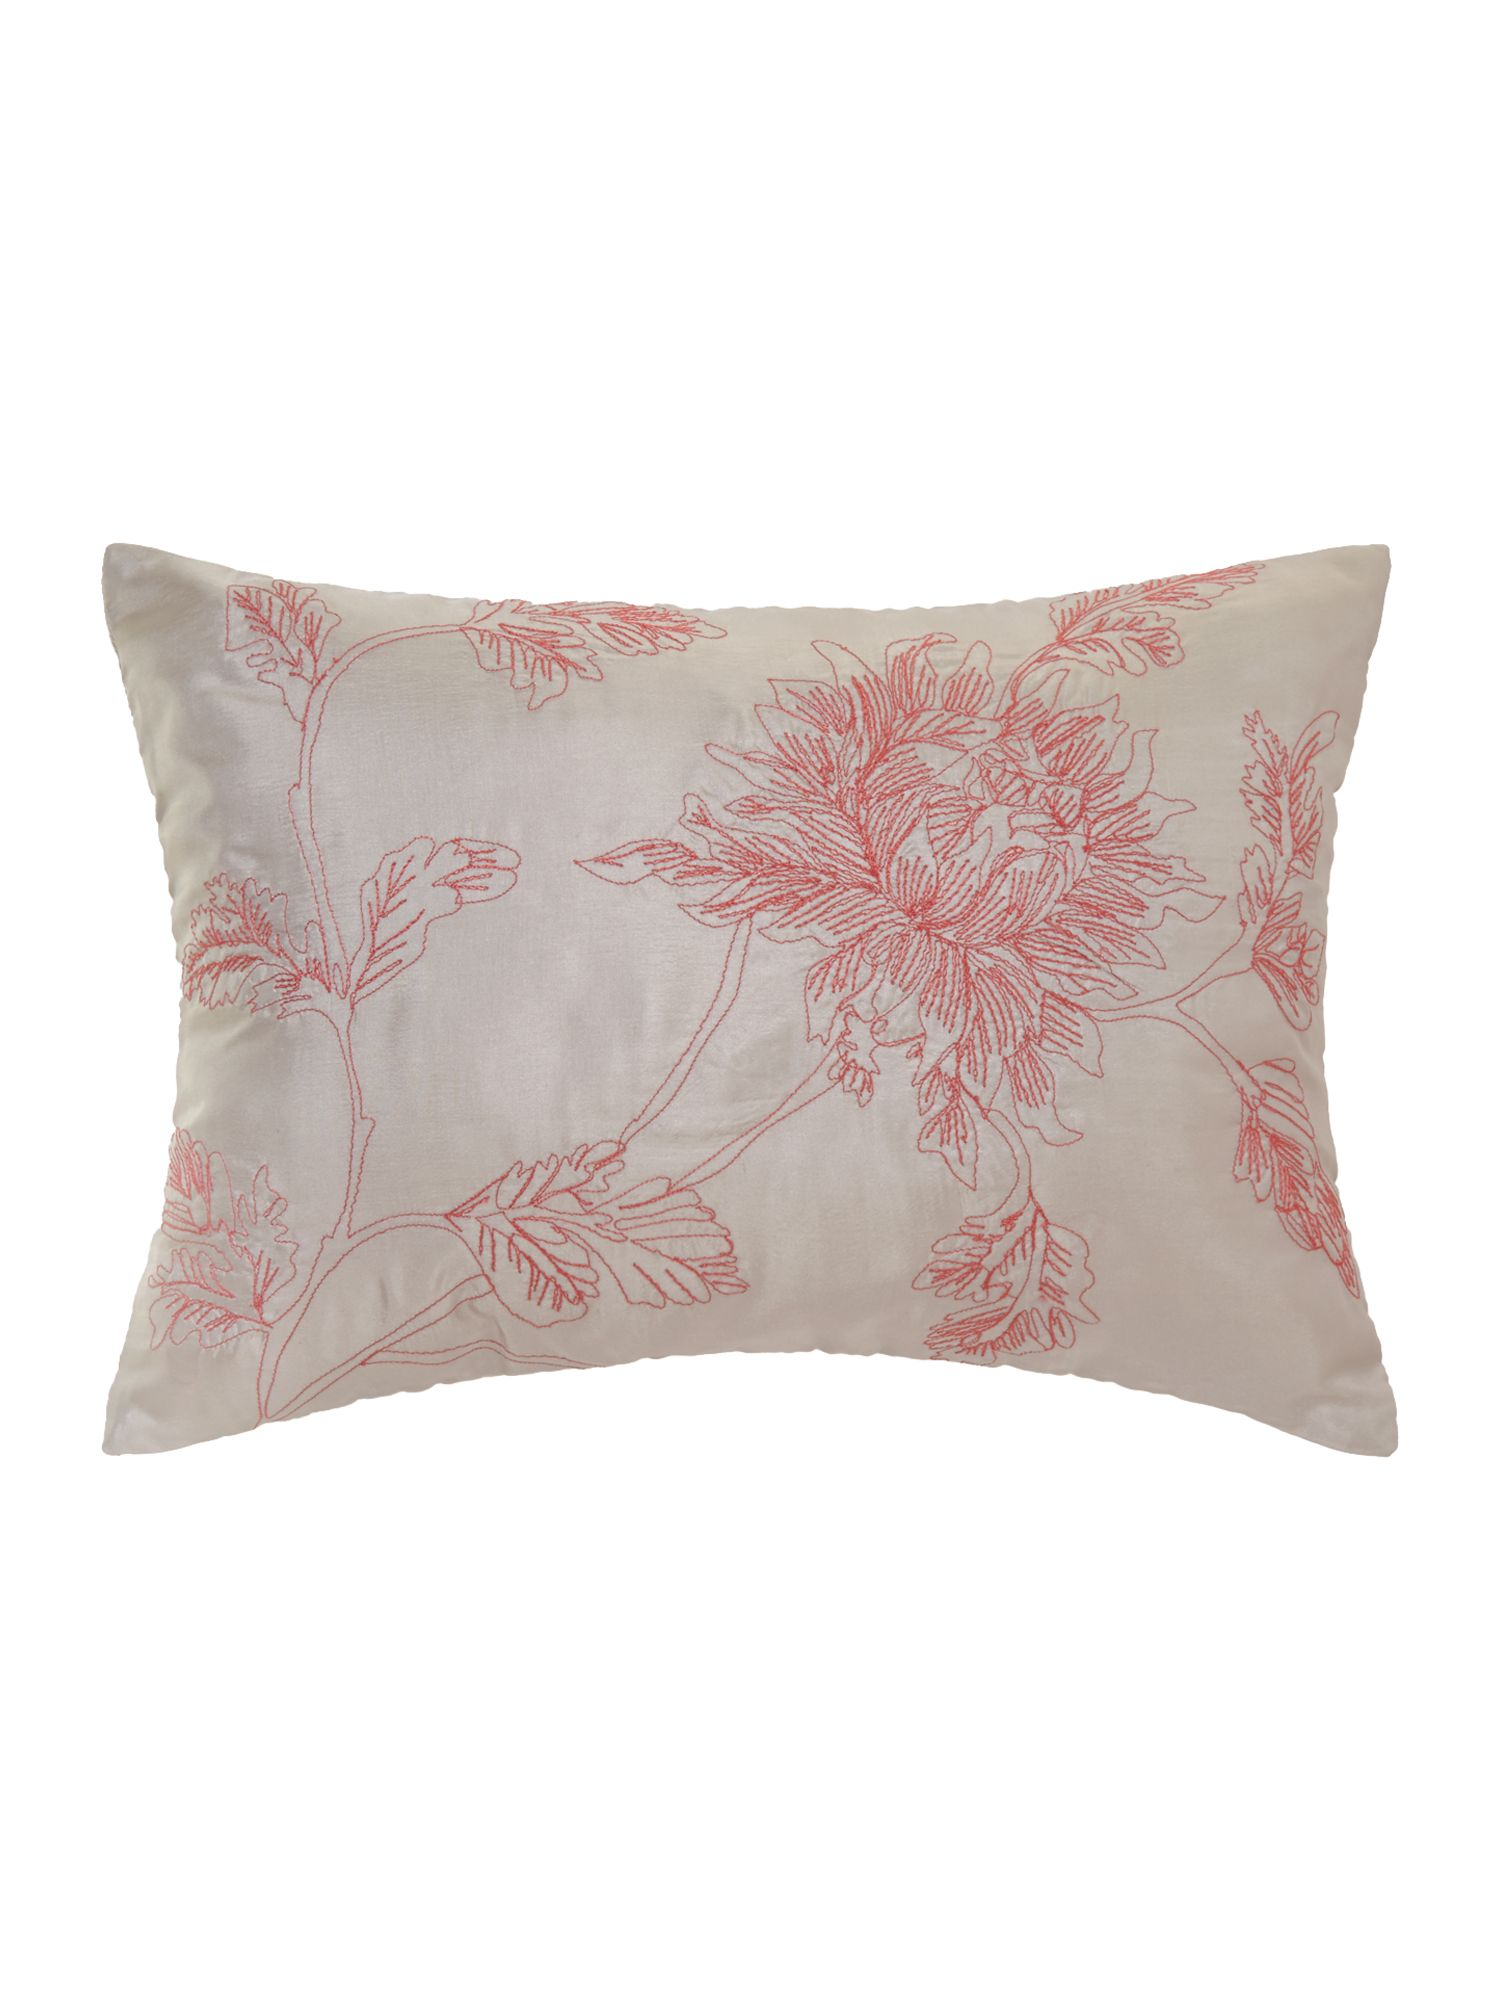 Chrysanthemum cushion pink